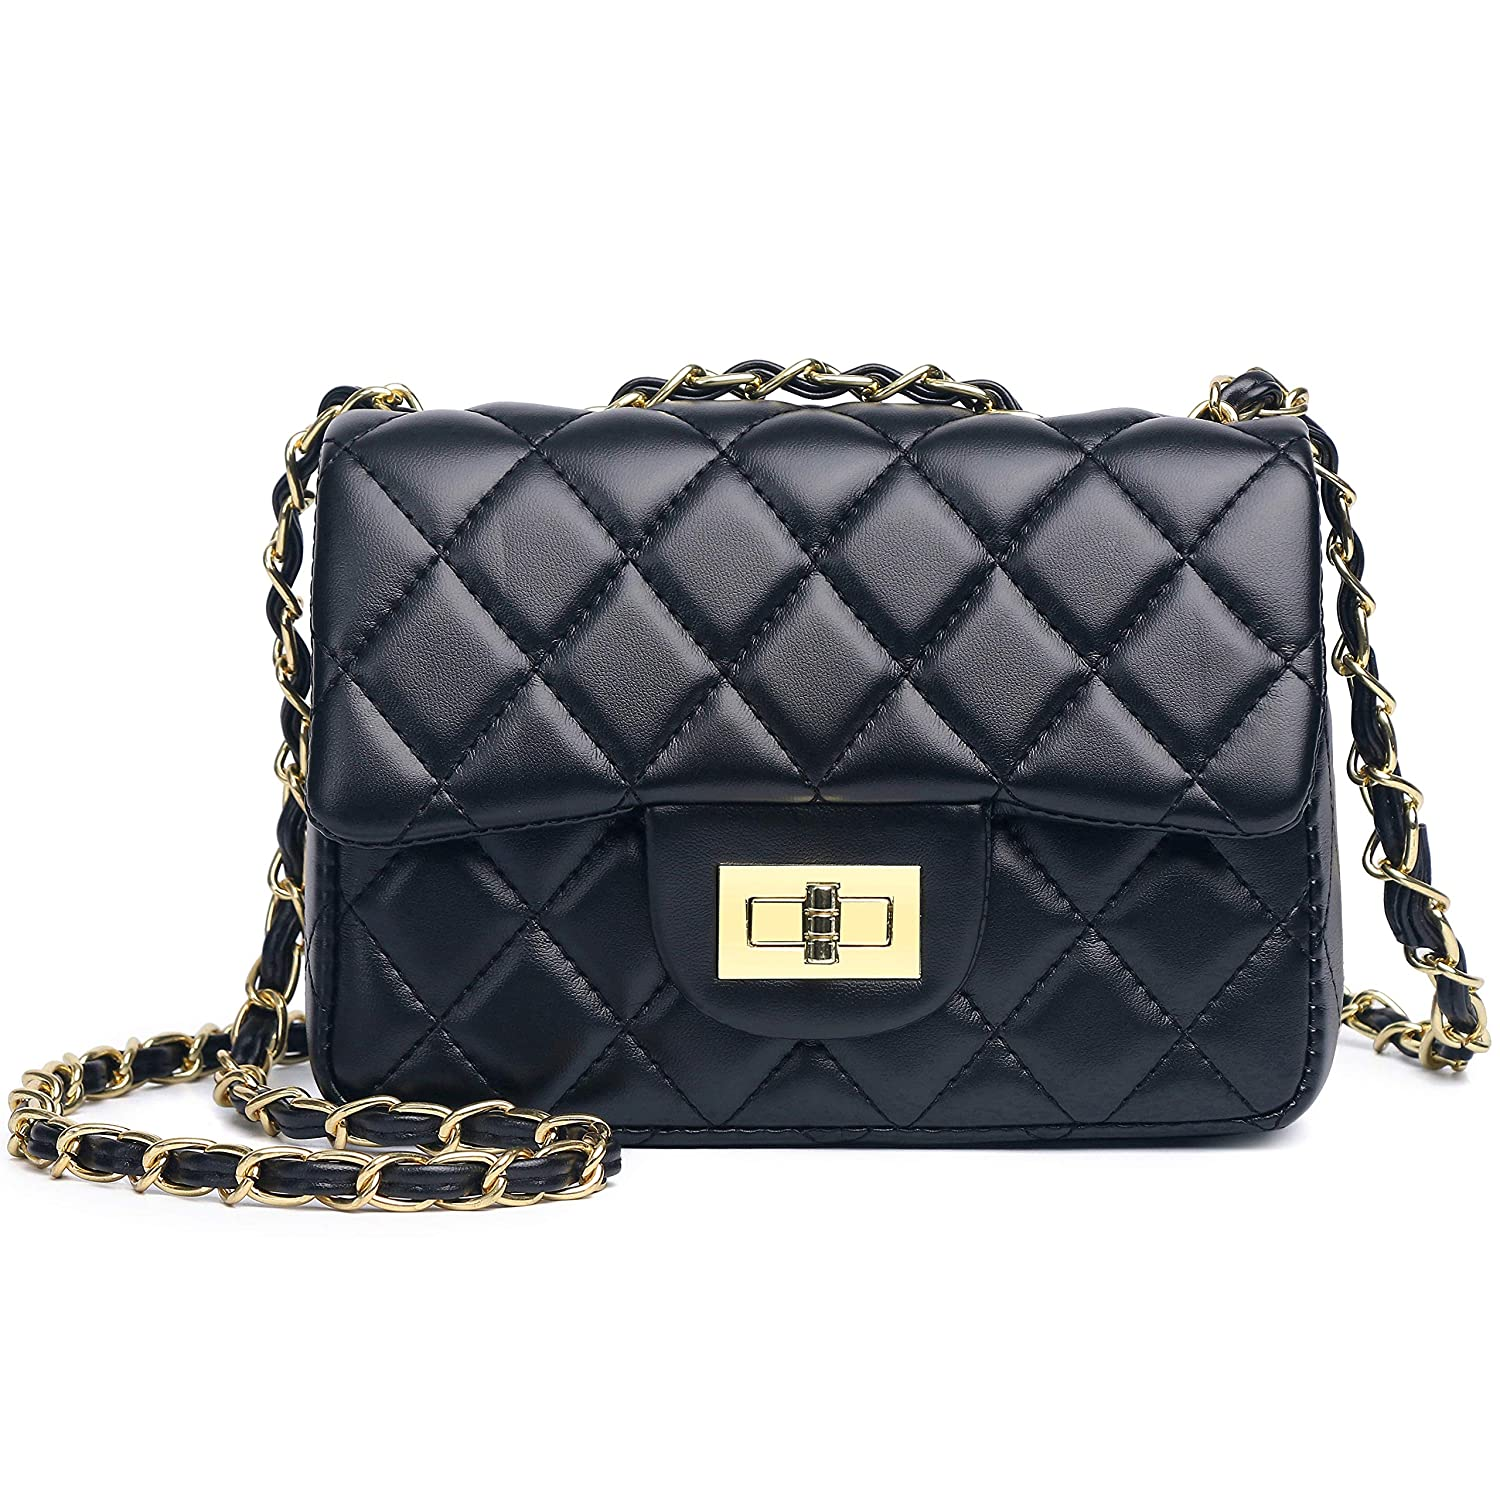 bebf758a121 Volcanic Rock Women Quilted Crossbody Bag Girls Side Purse and Shoulder  Handbags Designer Clutch with Chain (Black): Handbags: Amazon.com